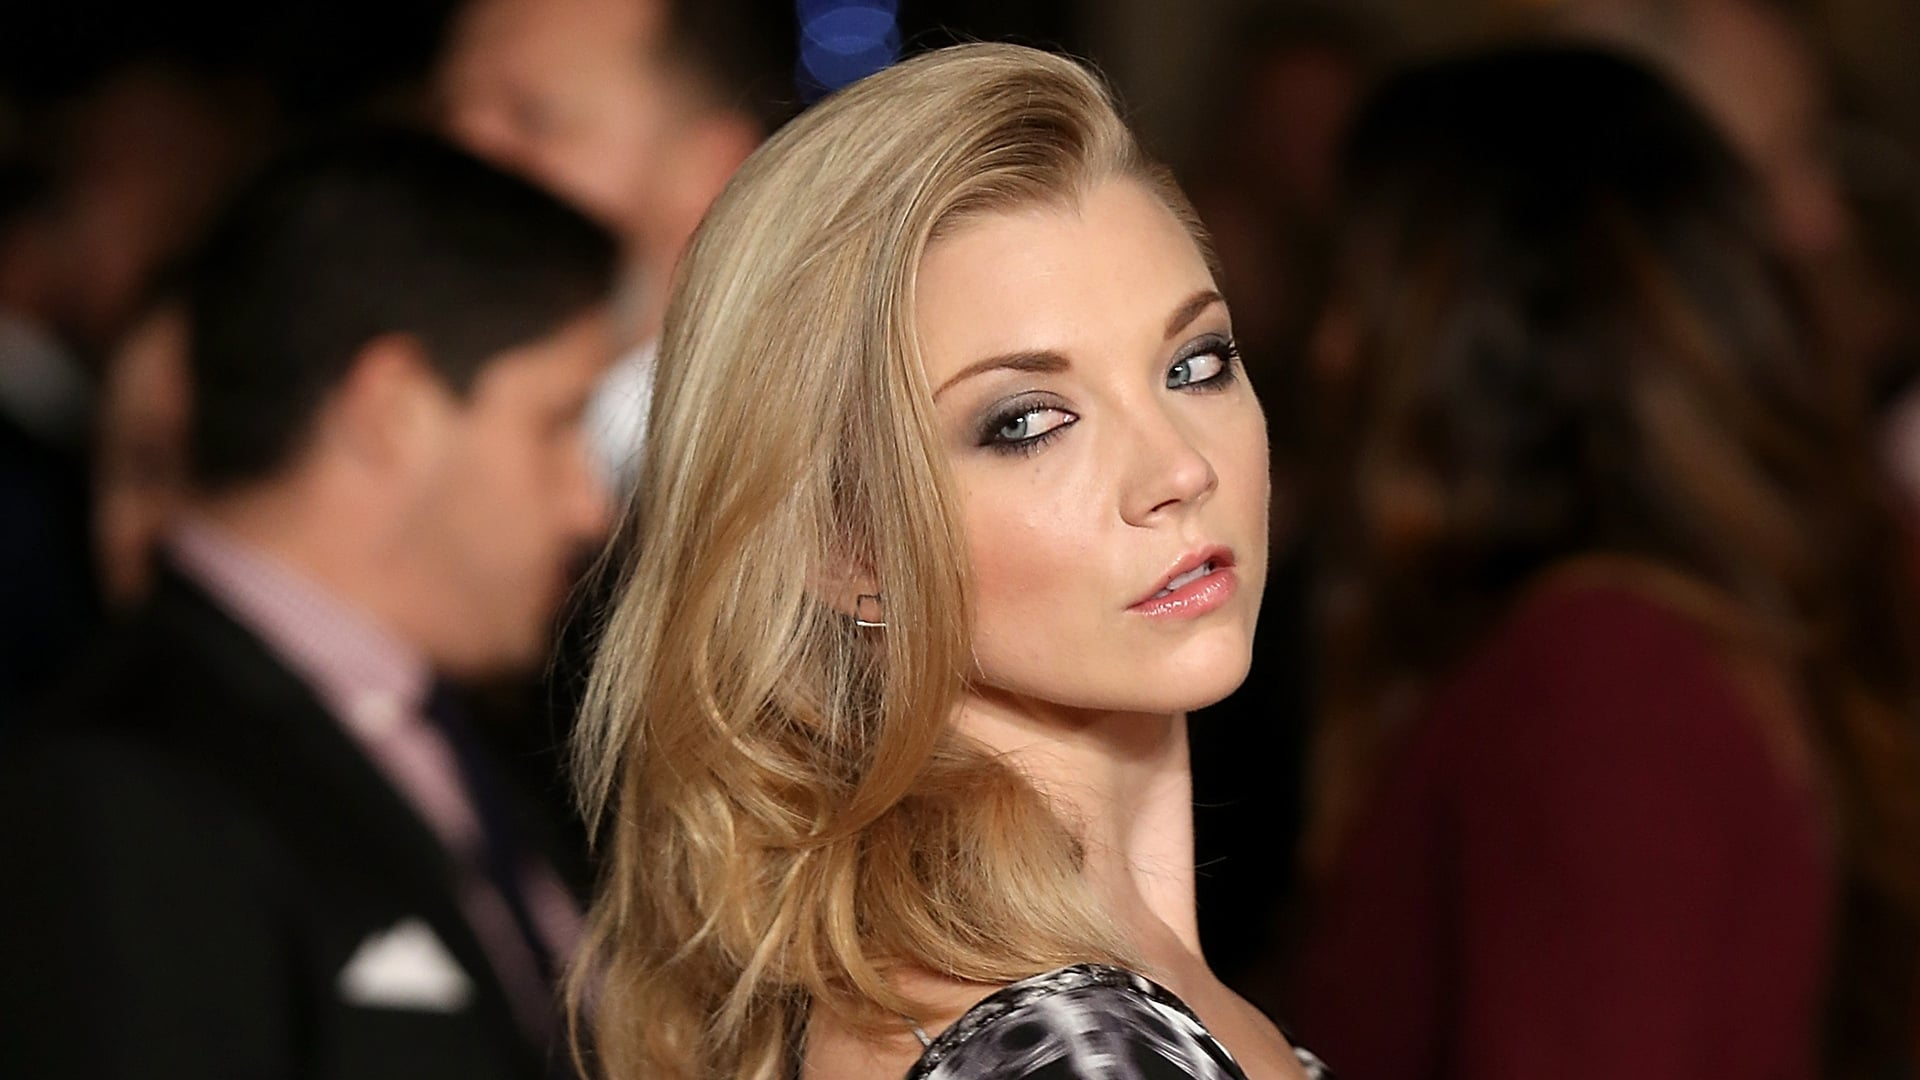 Image Result For Natalie Dormer Wallpaper Hd Wallpaper